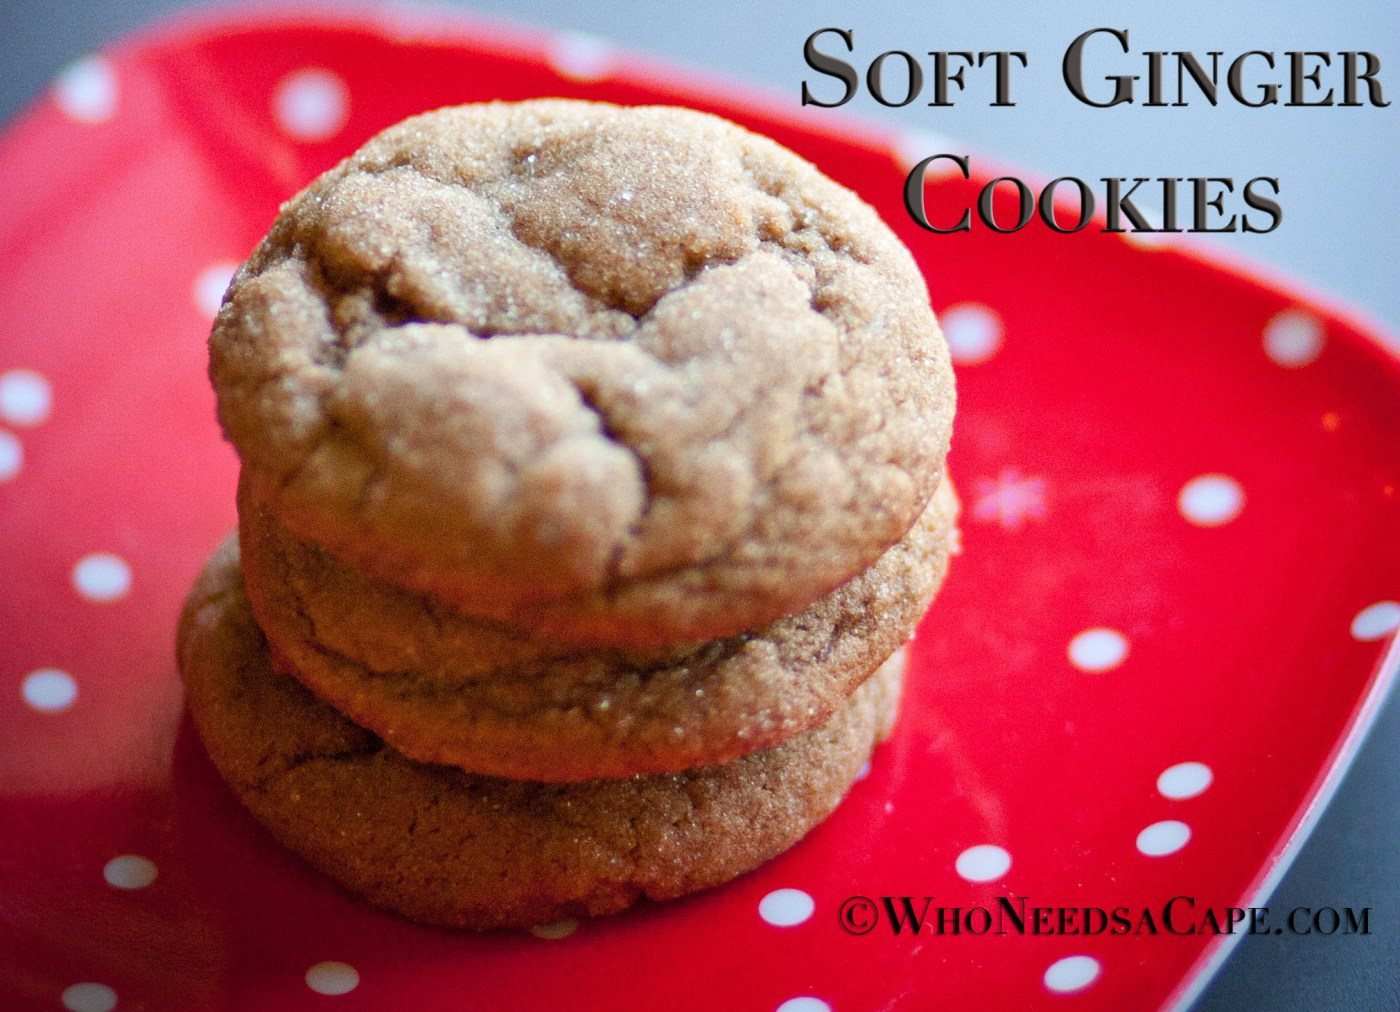 25 Last Minute Christmas Cookie Ideas. Soft Ginger Cookies.